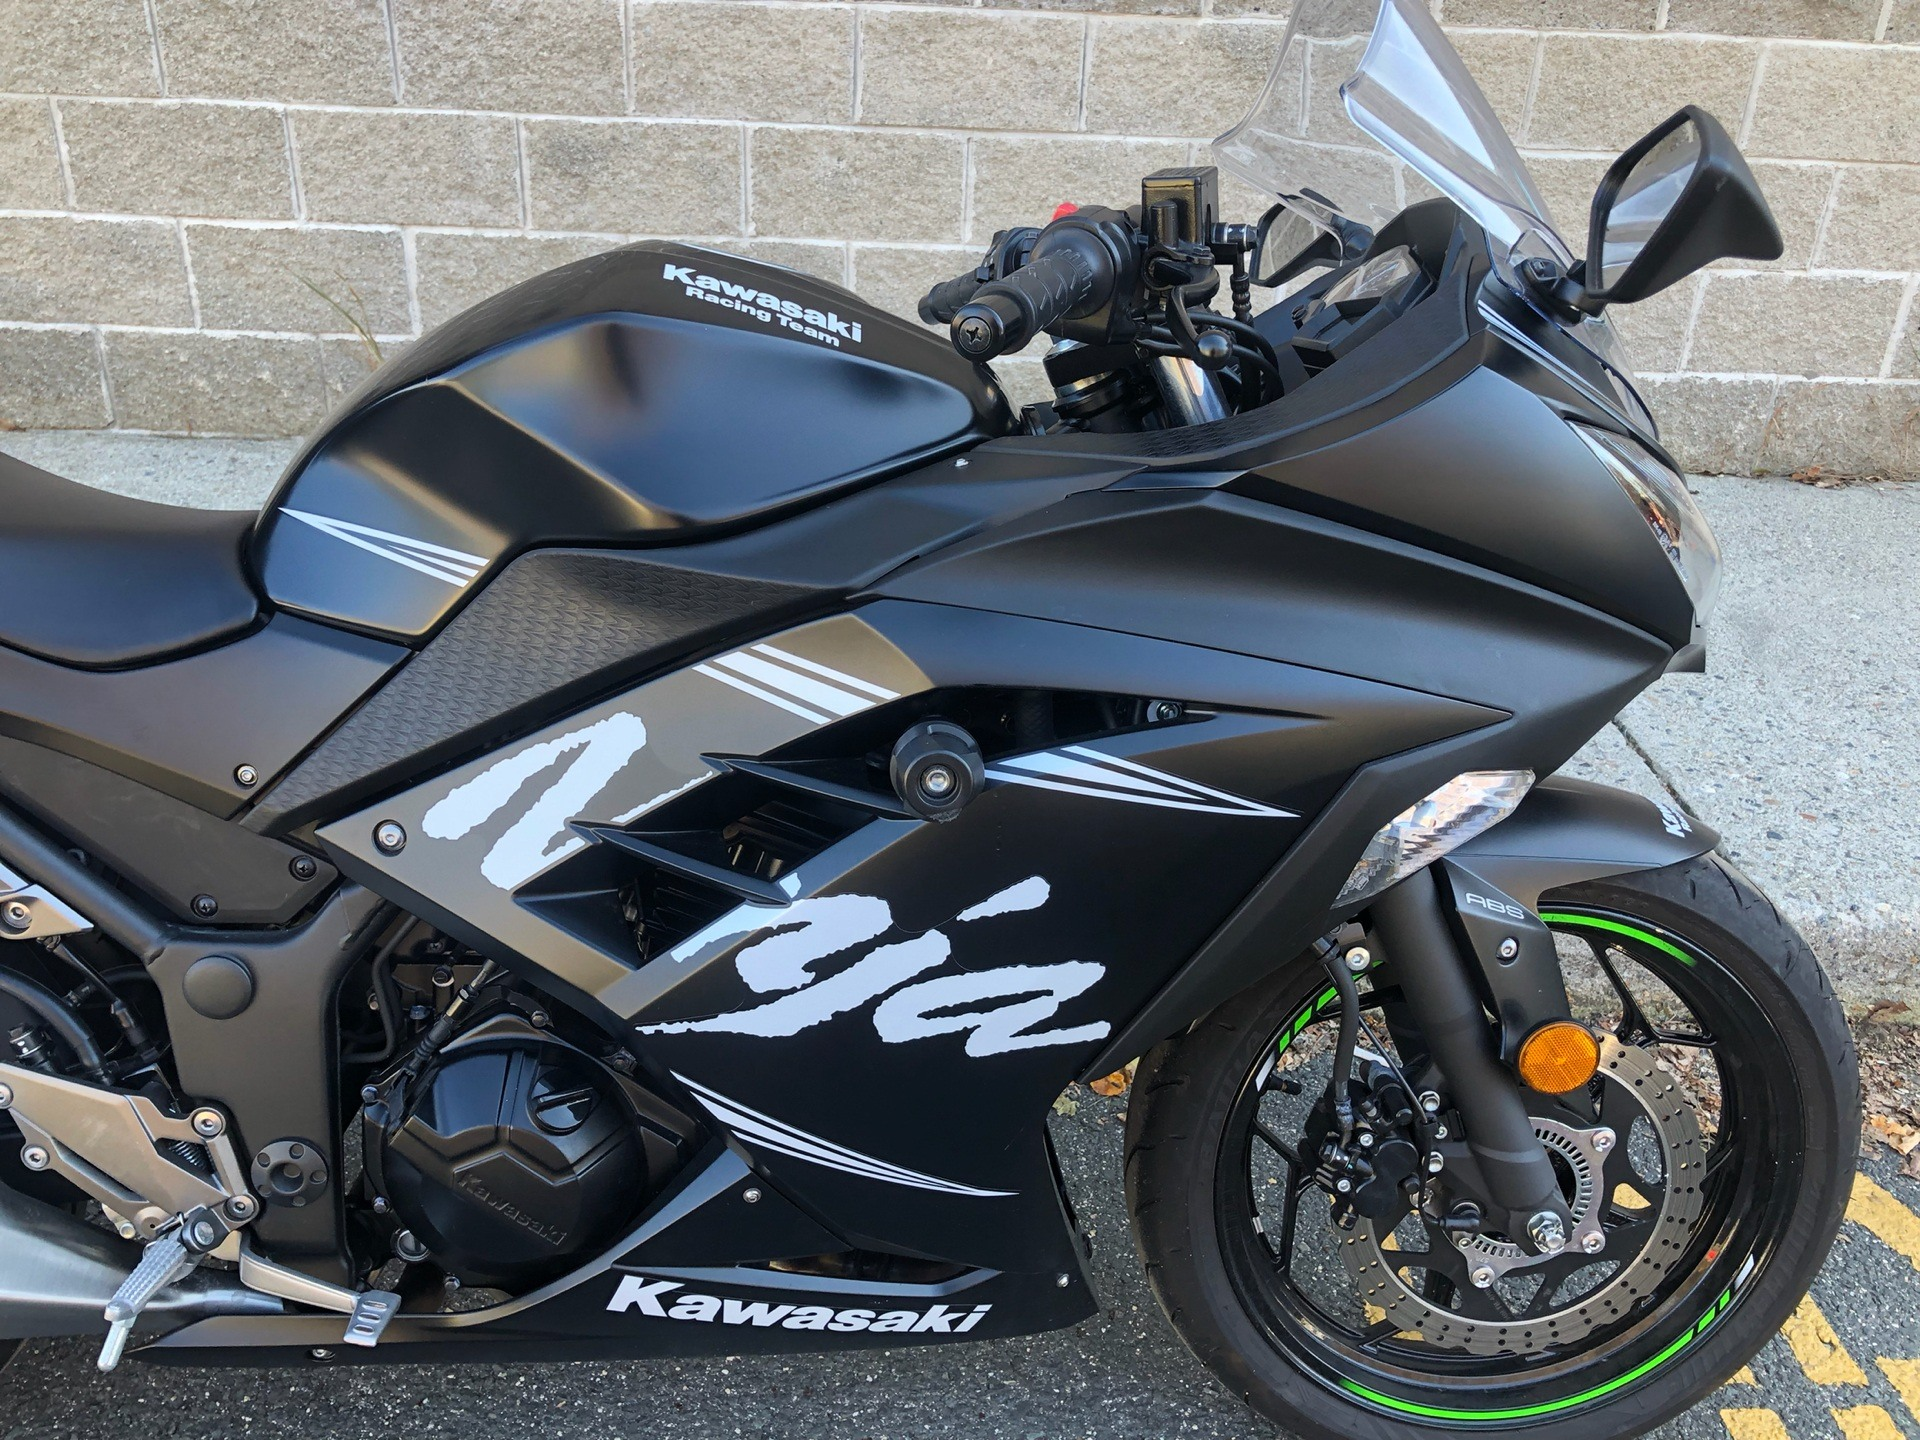 2017 Kawasaki Ninja 300 ABS Winter Test Edition in Enfield, Connecticut - Photo 34